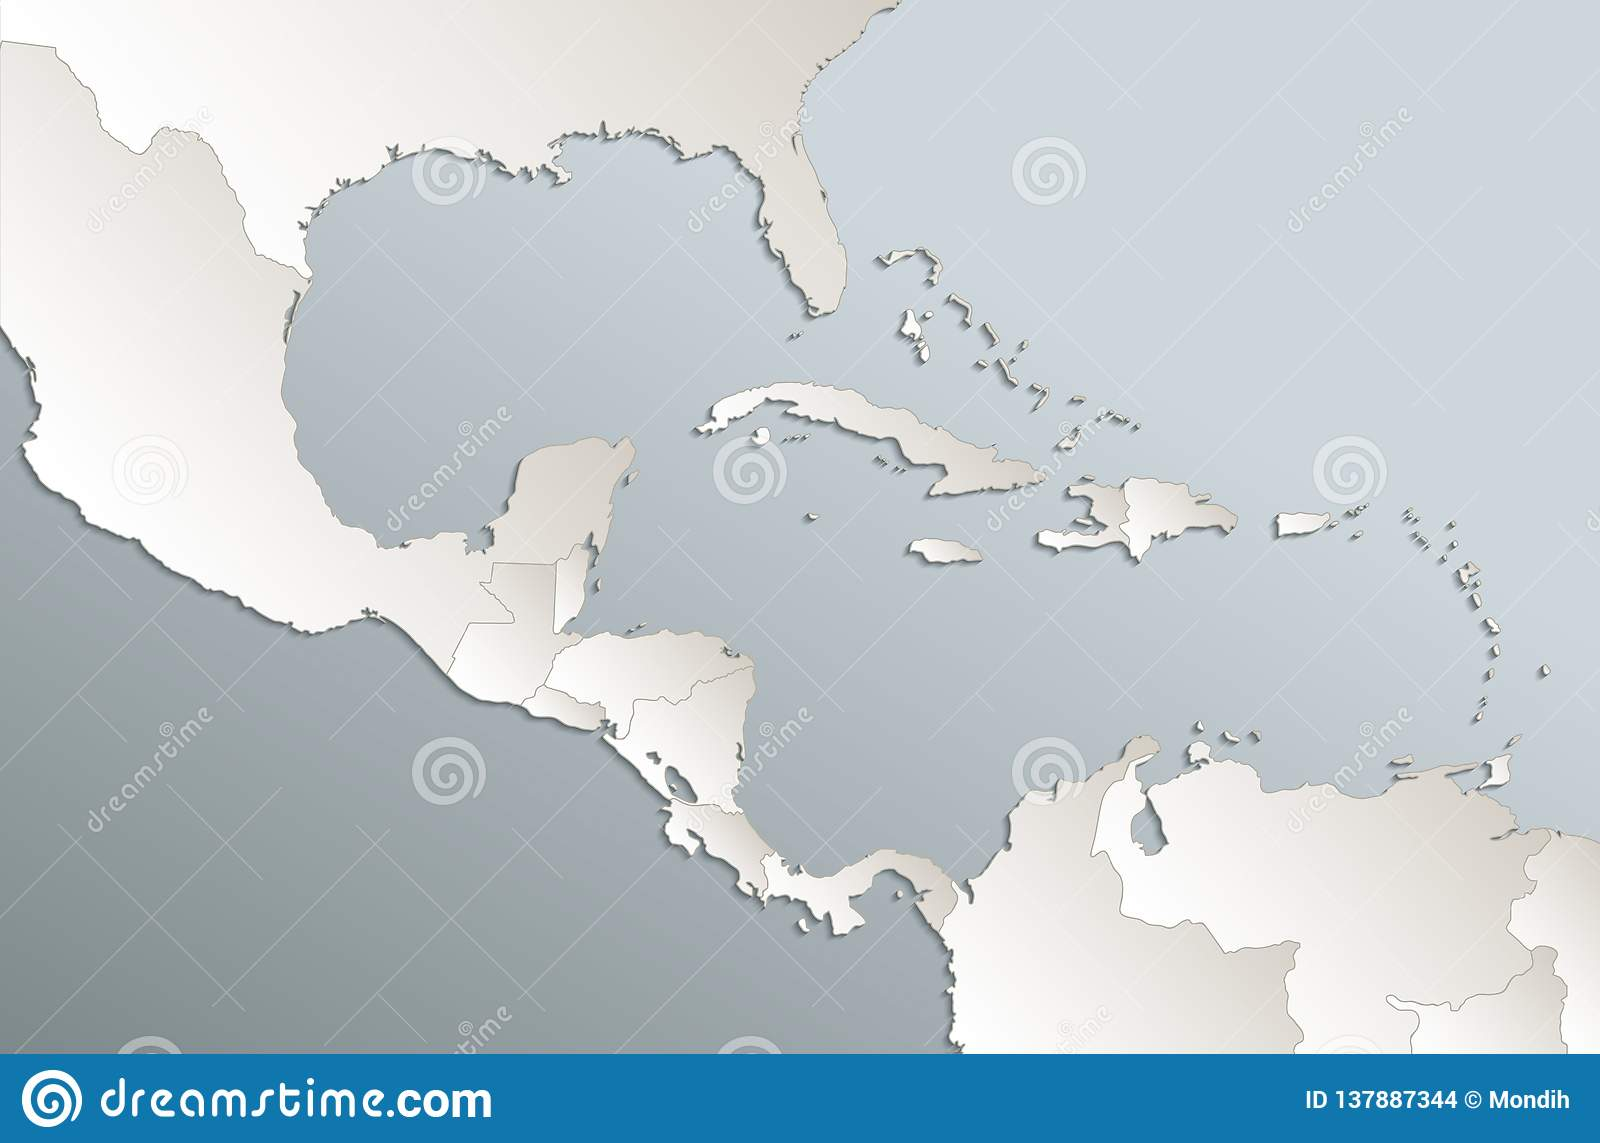 Caribbean Islands Central America Map Card Blue White 3D ...